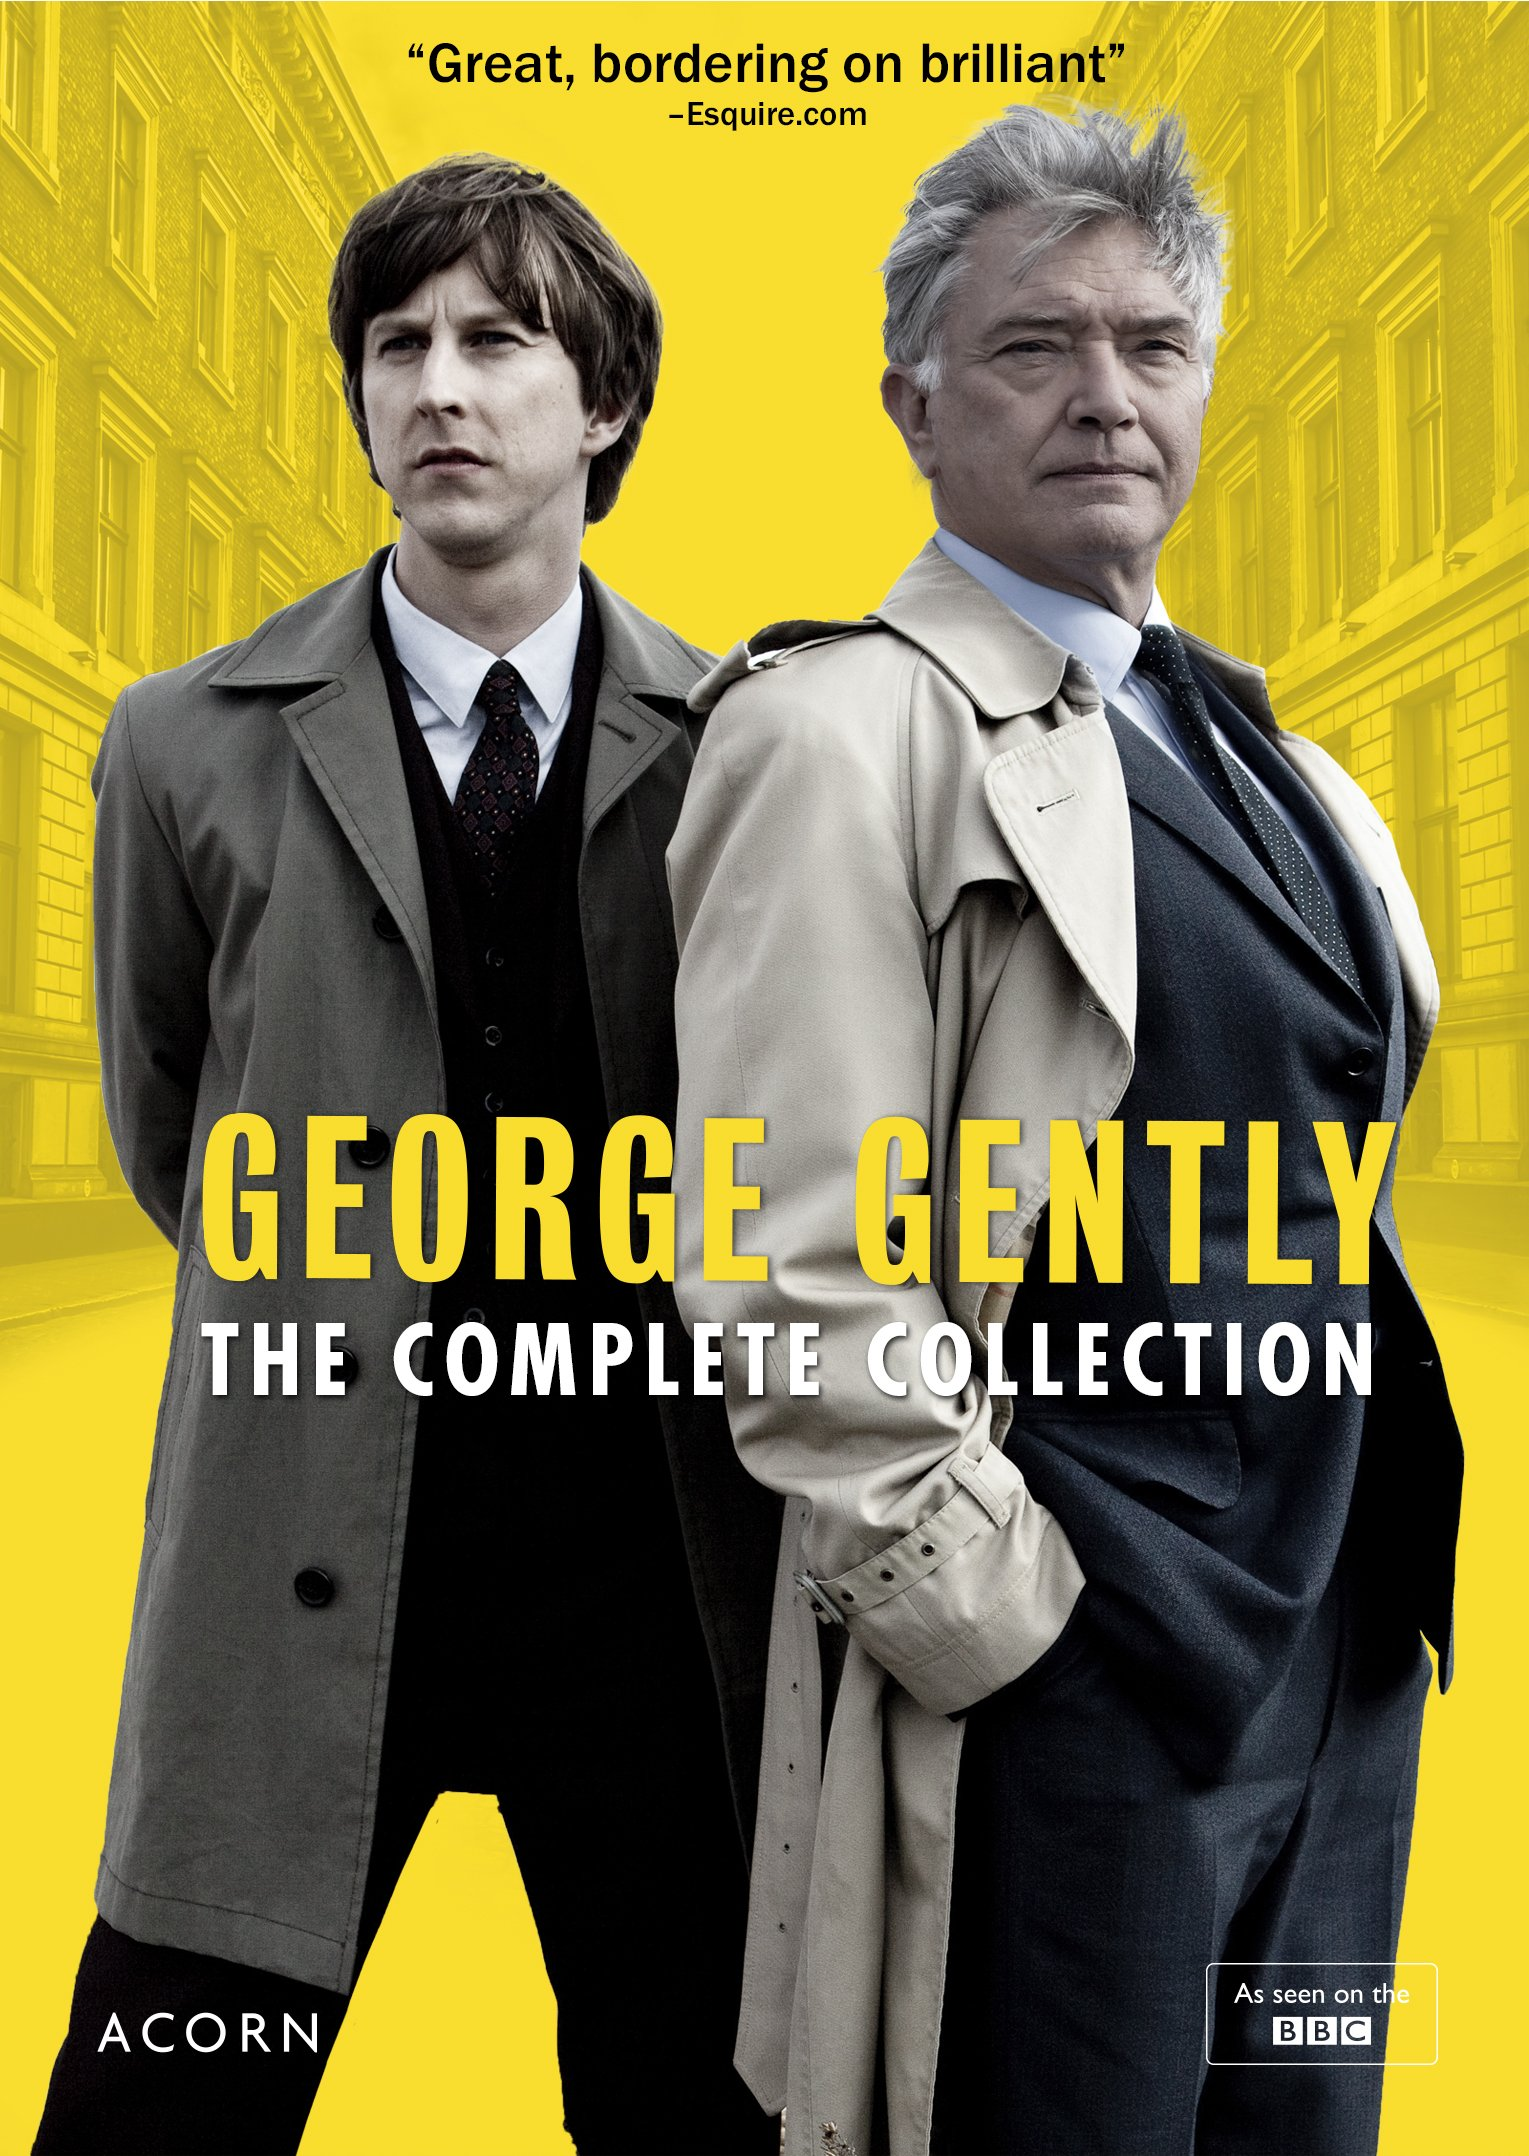 George Gently: The Complete Collection by RLJ/SPHE